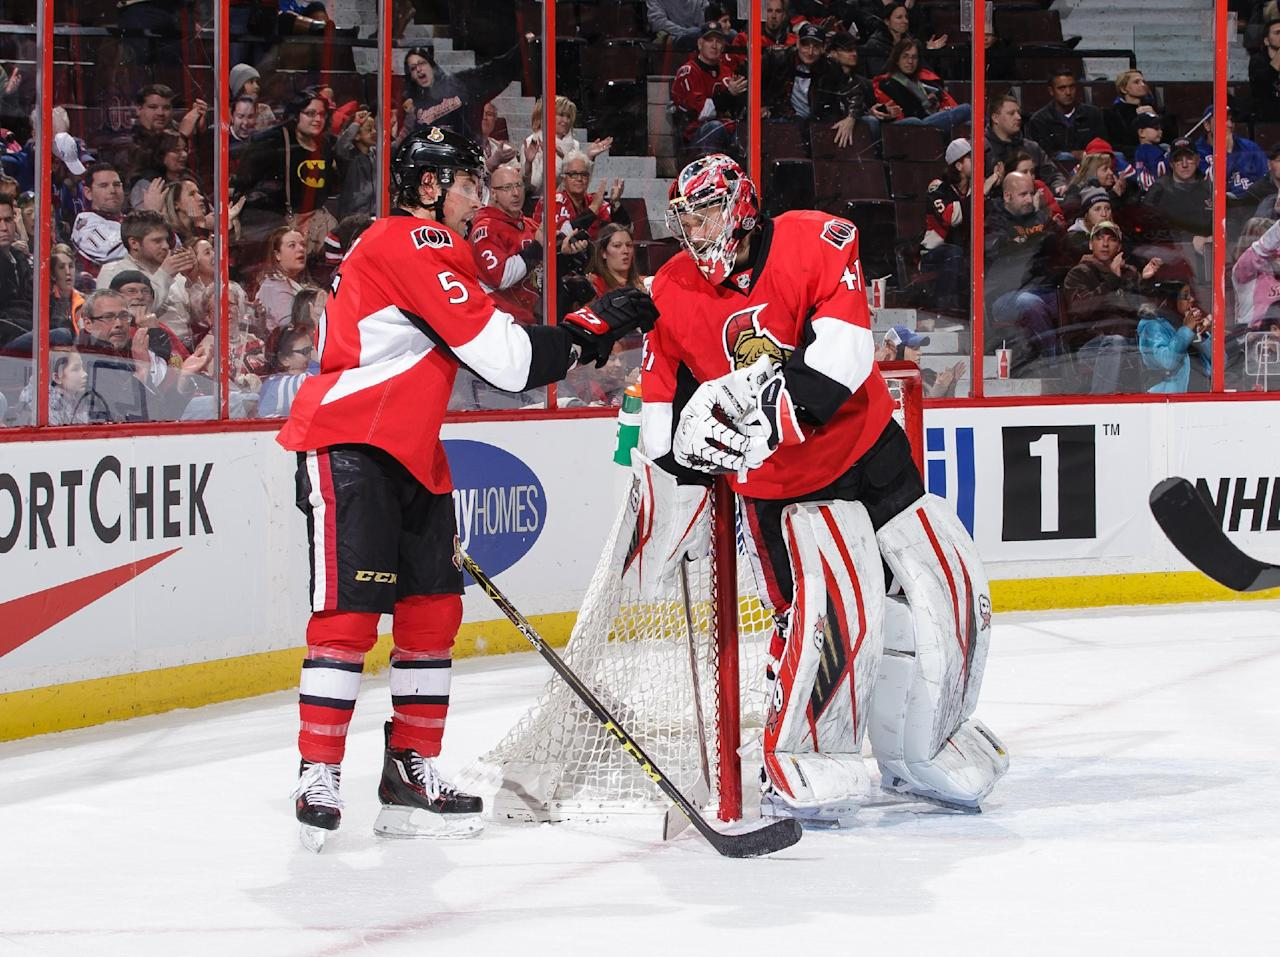 OTTAWA, ON - JANUARY 24: Cody Ceci #5 gives the puck to team mate Craig Anderson #41of the Ottawa Senators after he earned a shut-out against the New York Rangers during an NHL game at Canadian Tire Centre on January 24, 2016 in Ottawa, Ontario, Canada. (Photo by Jana Chytilova/Freestyle Photography/Getty Images)